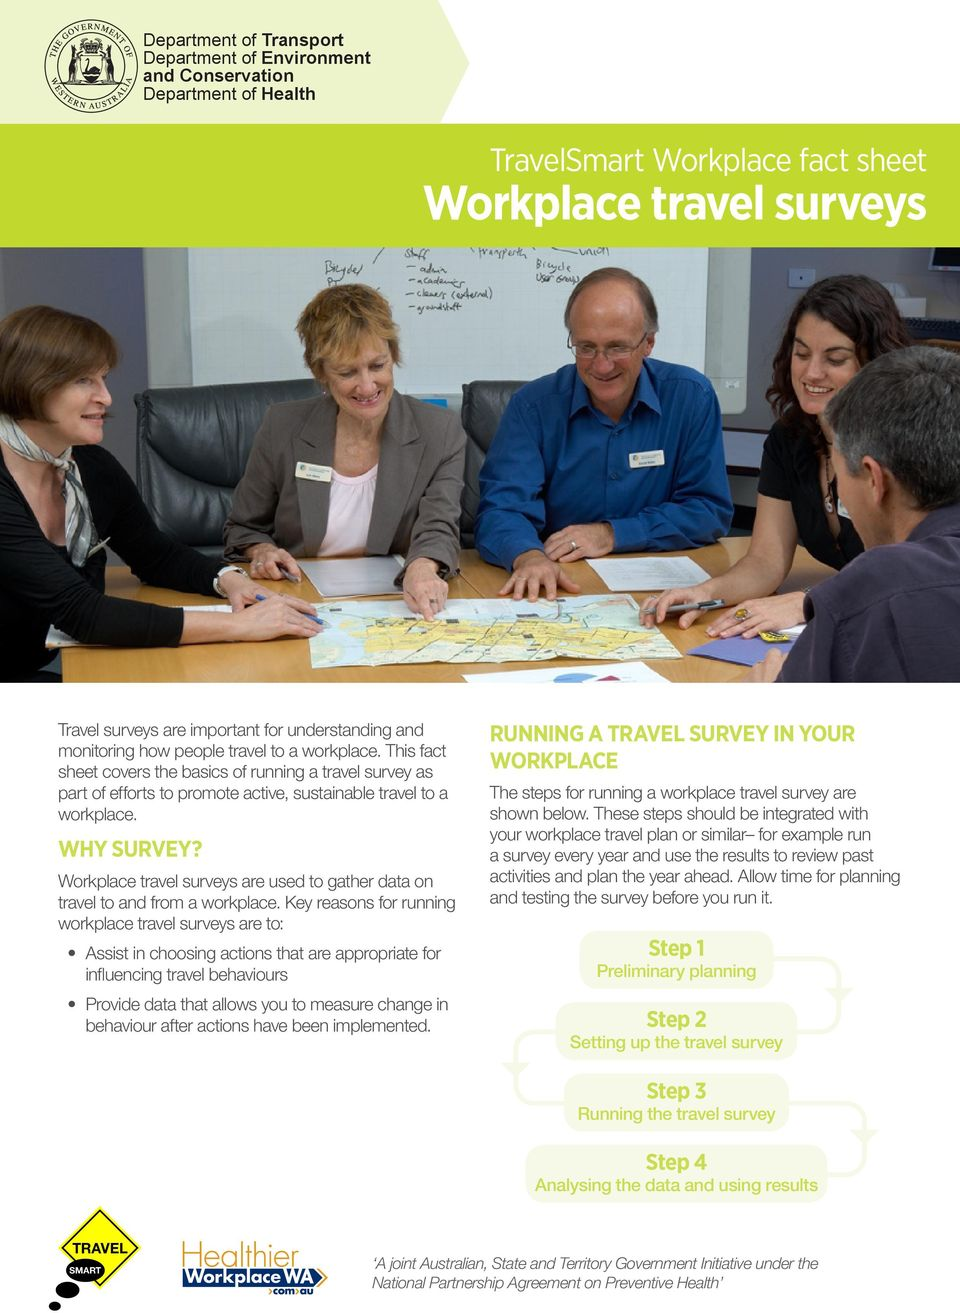 Workplace travel surveys are used to gather data on travel to and from a workplace.